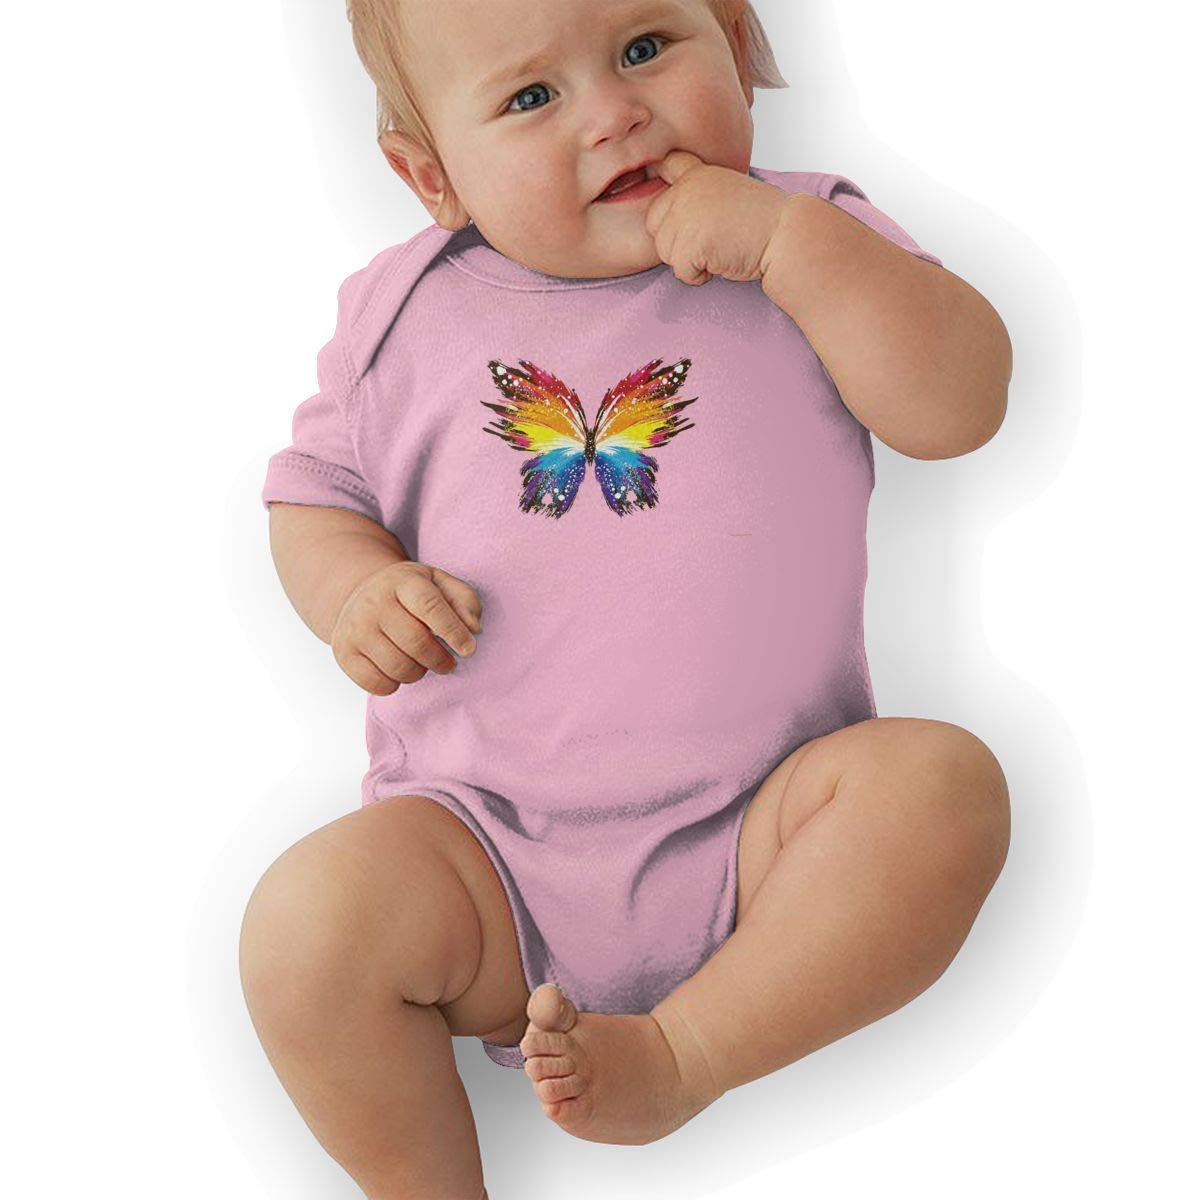 Colorful Butterfly Print Baby Onesies Toddler Baby Girl//Boy Unisex Clothes Romper Jumpsuit Bodysuit One Piece